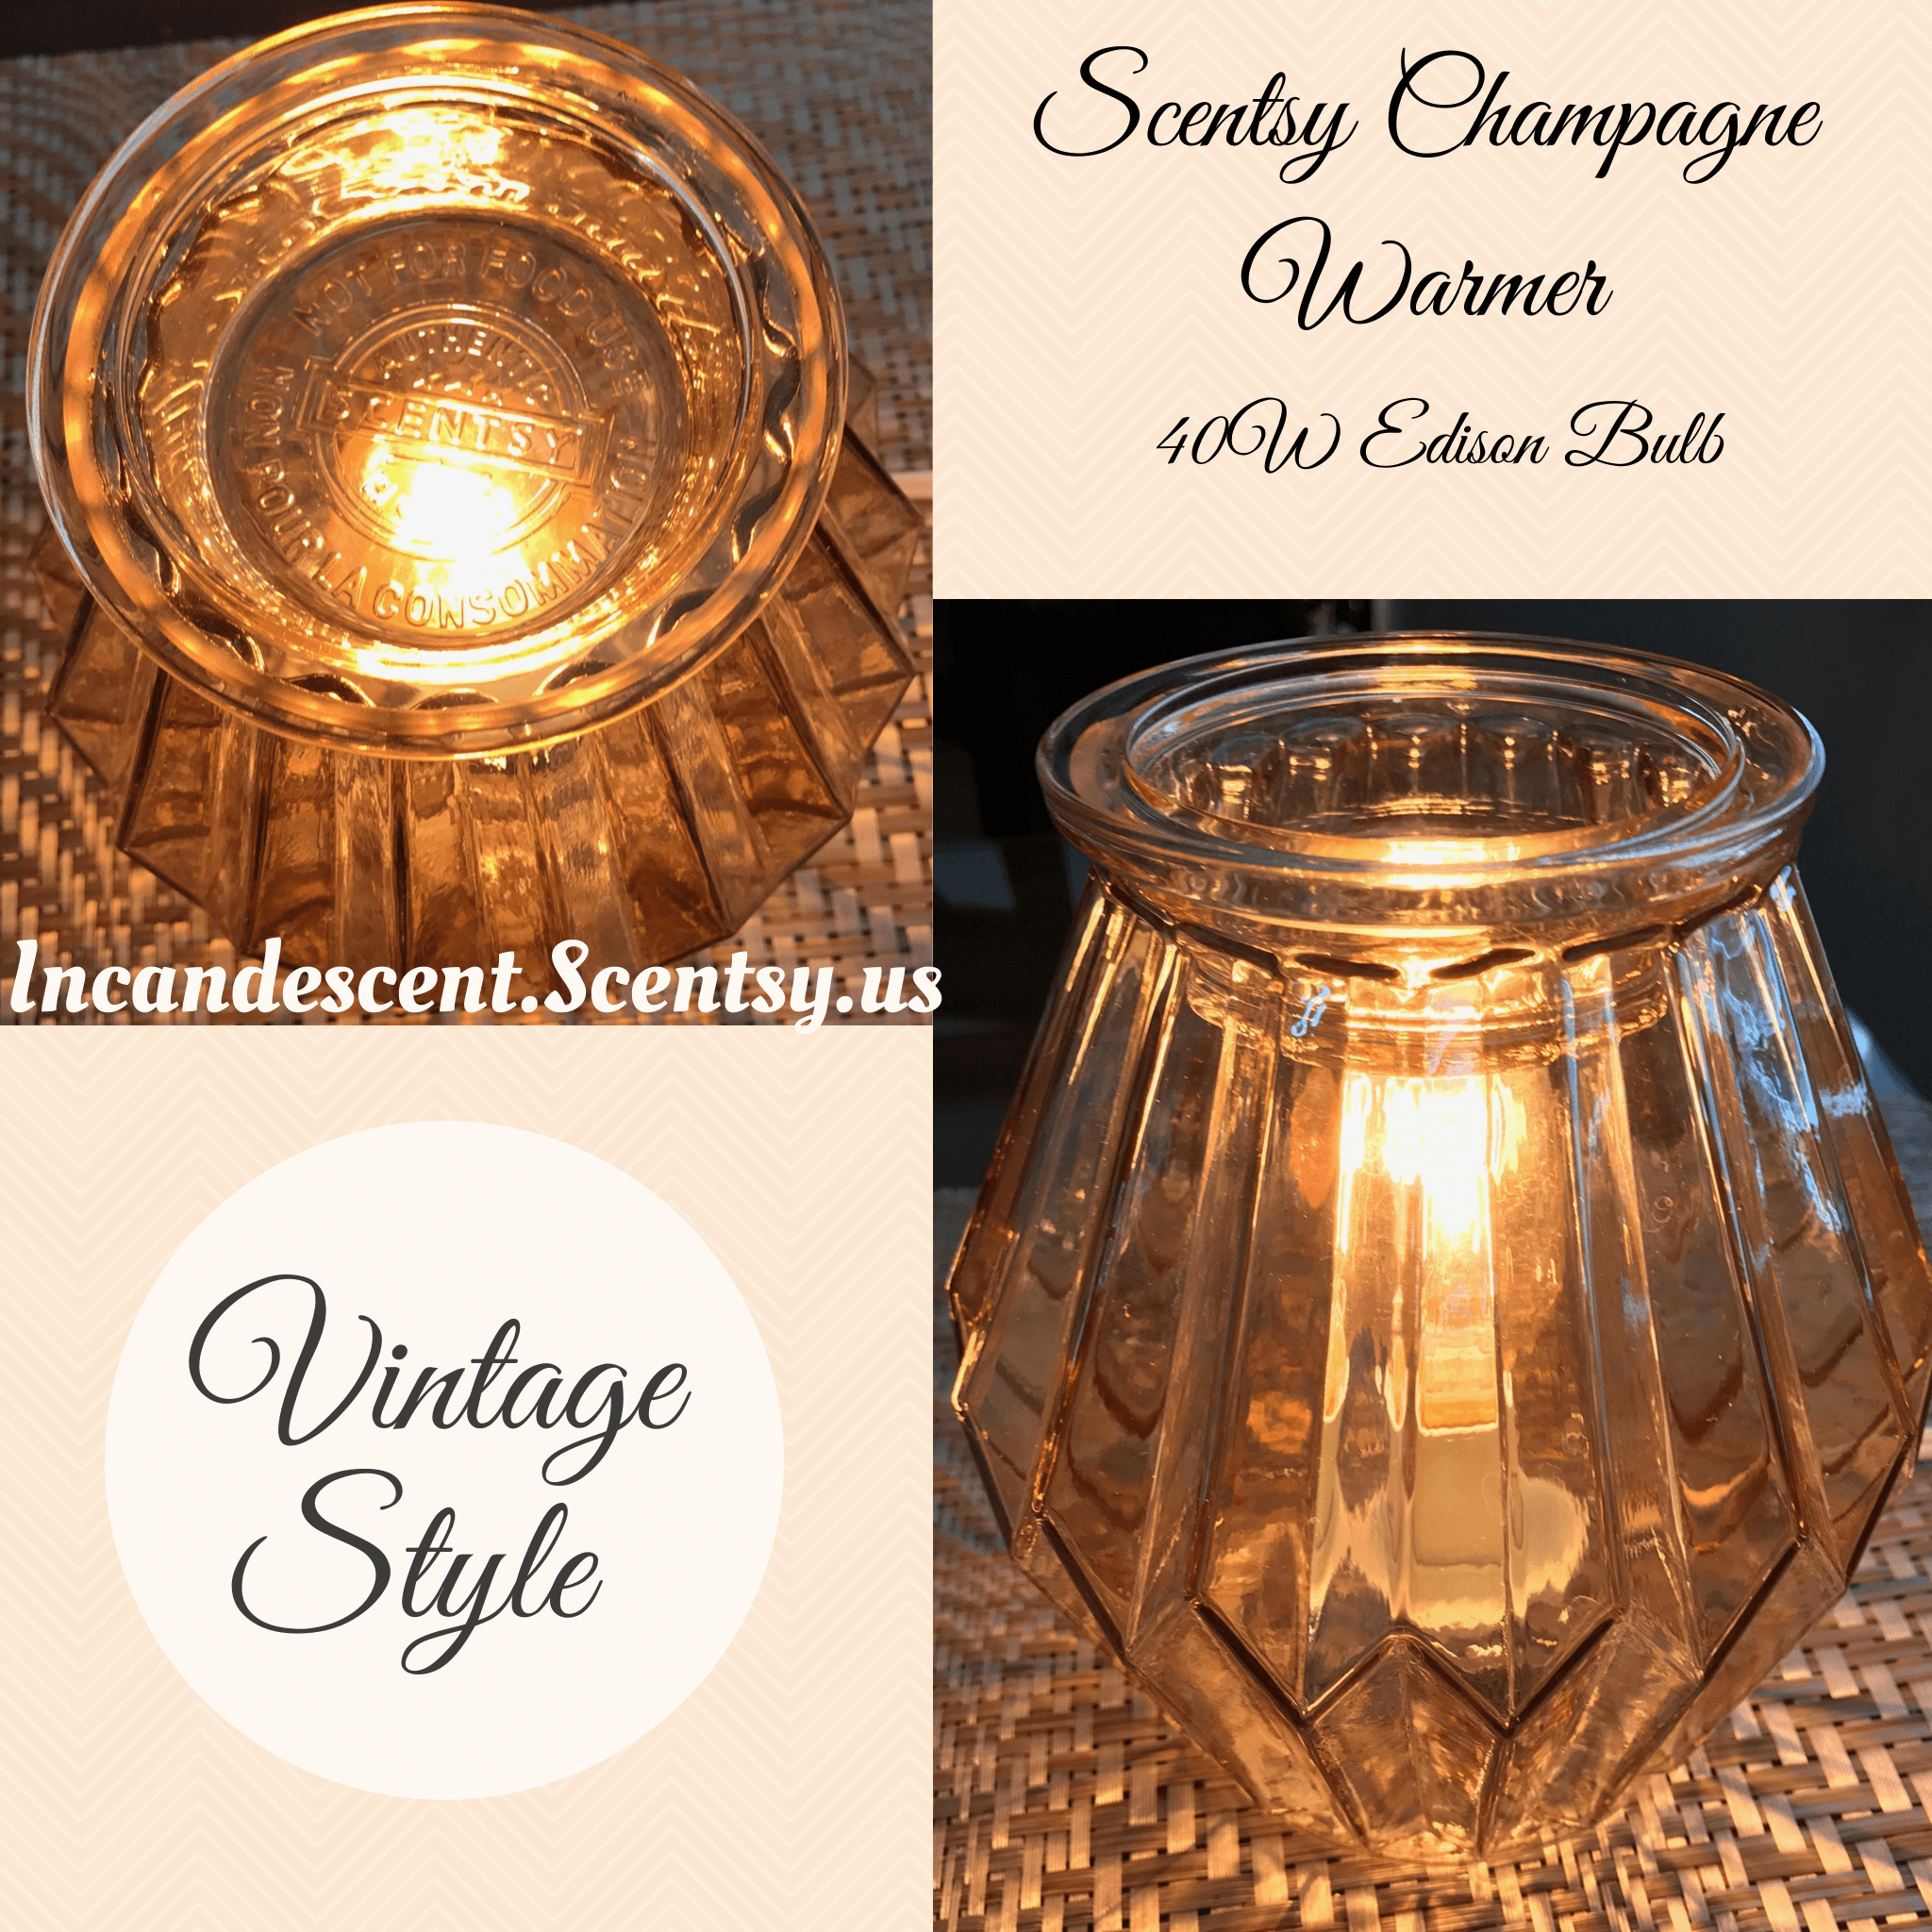 NEW CHAMPAGNE SCENTSY WARMER